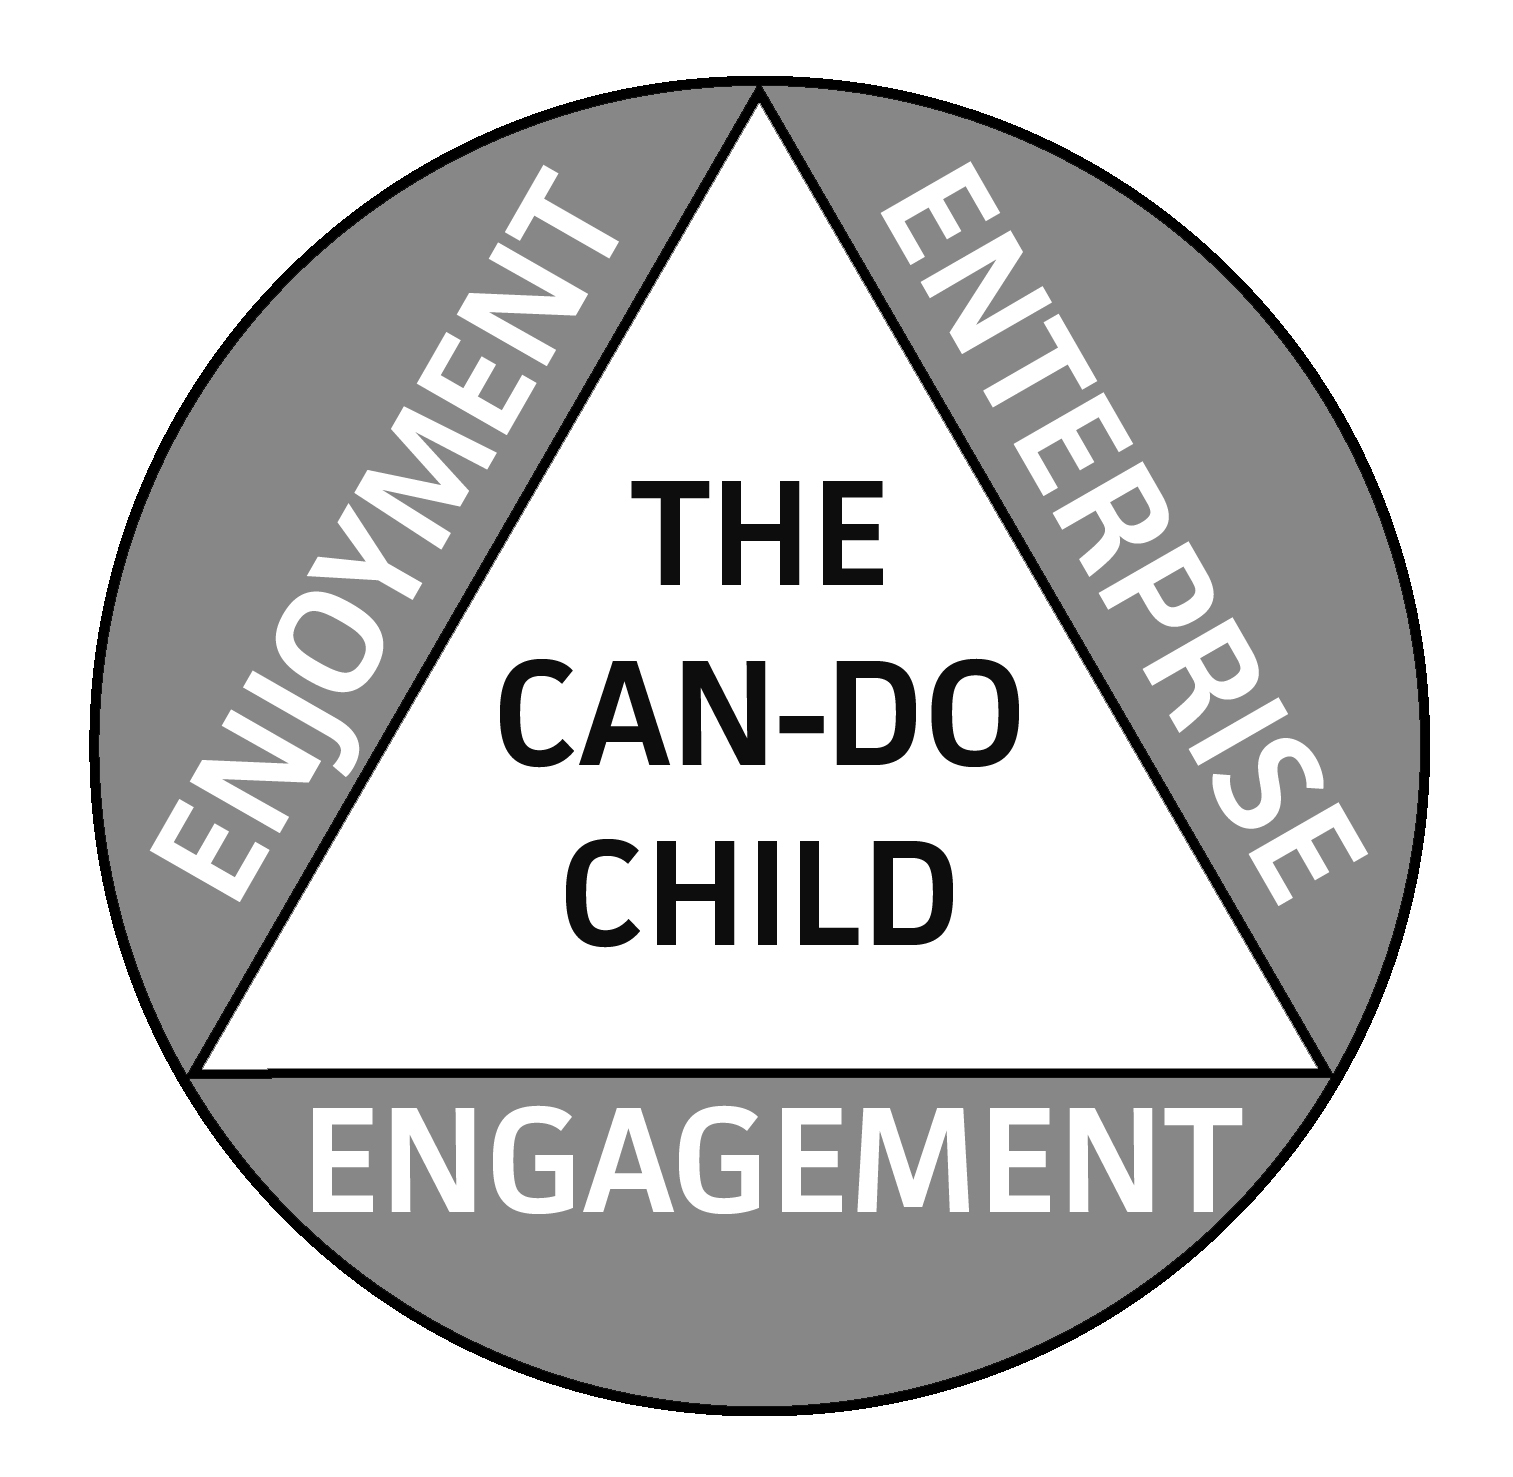 Three Es Can-Do Child philosophy